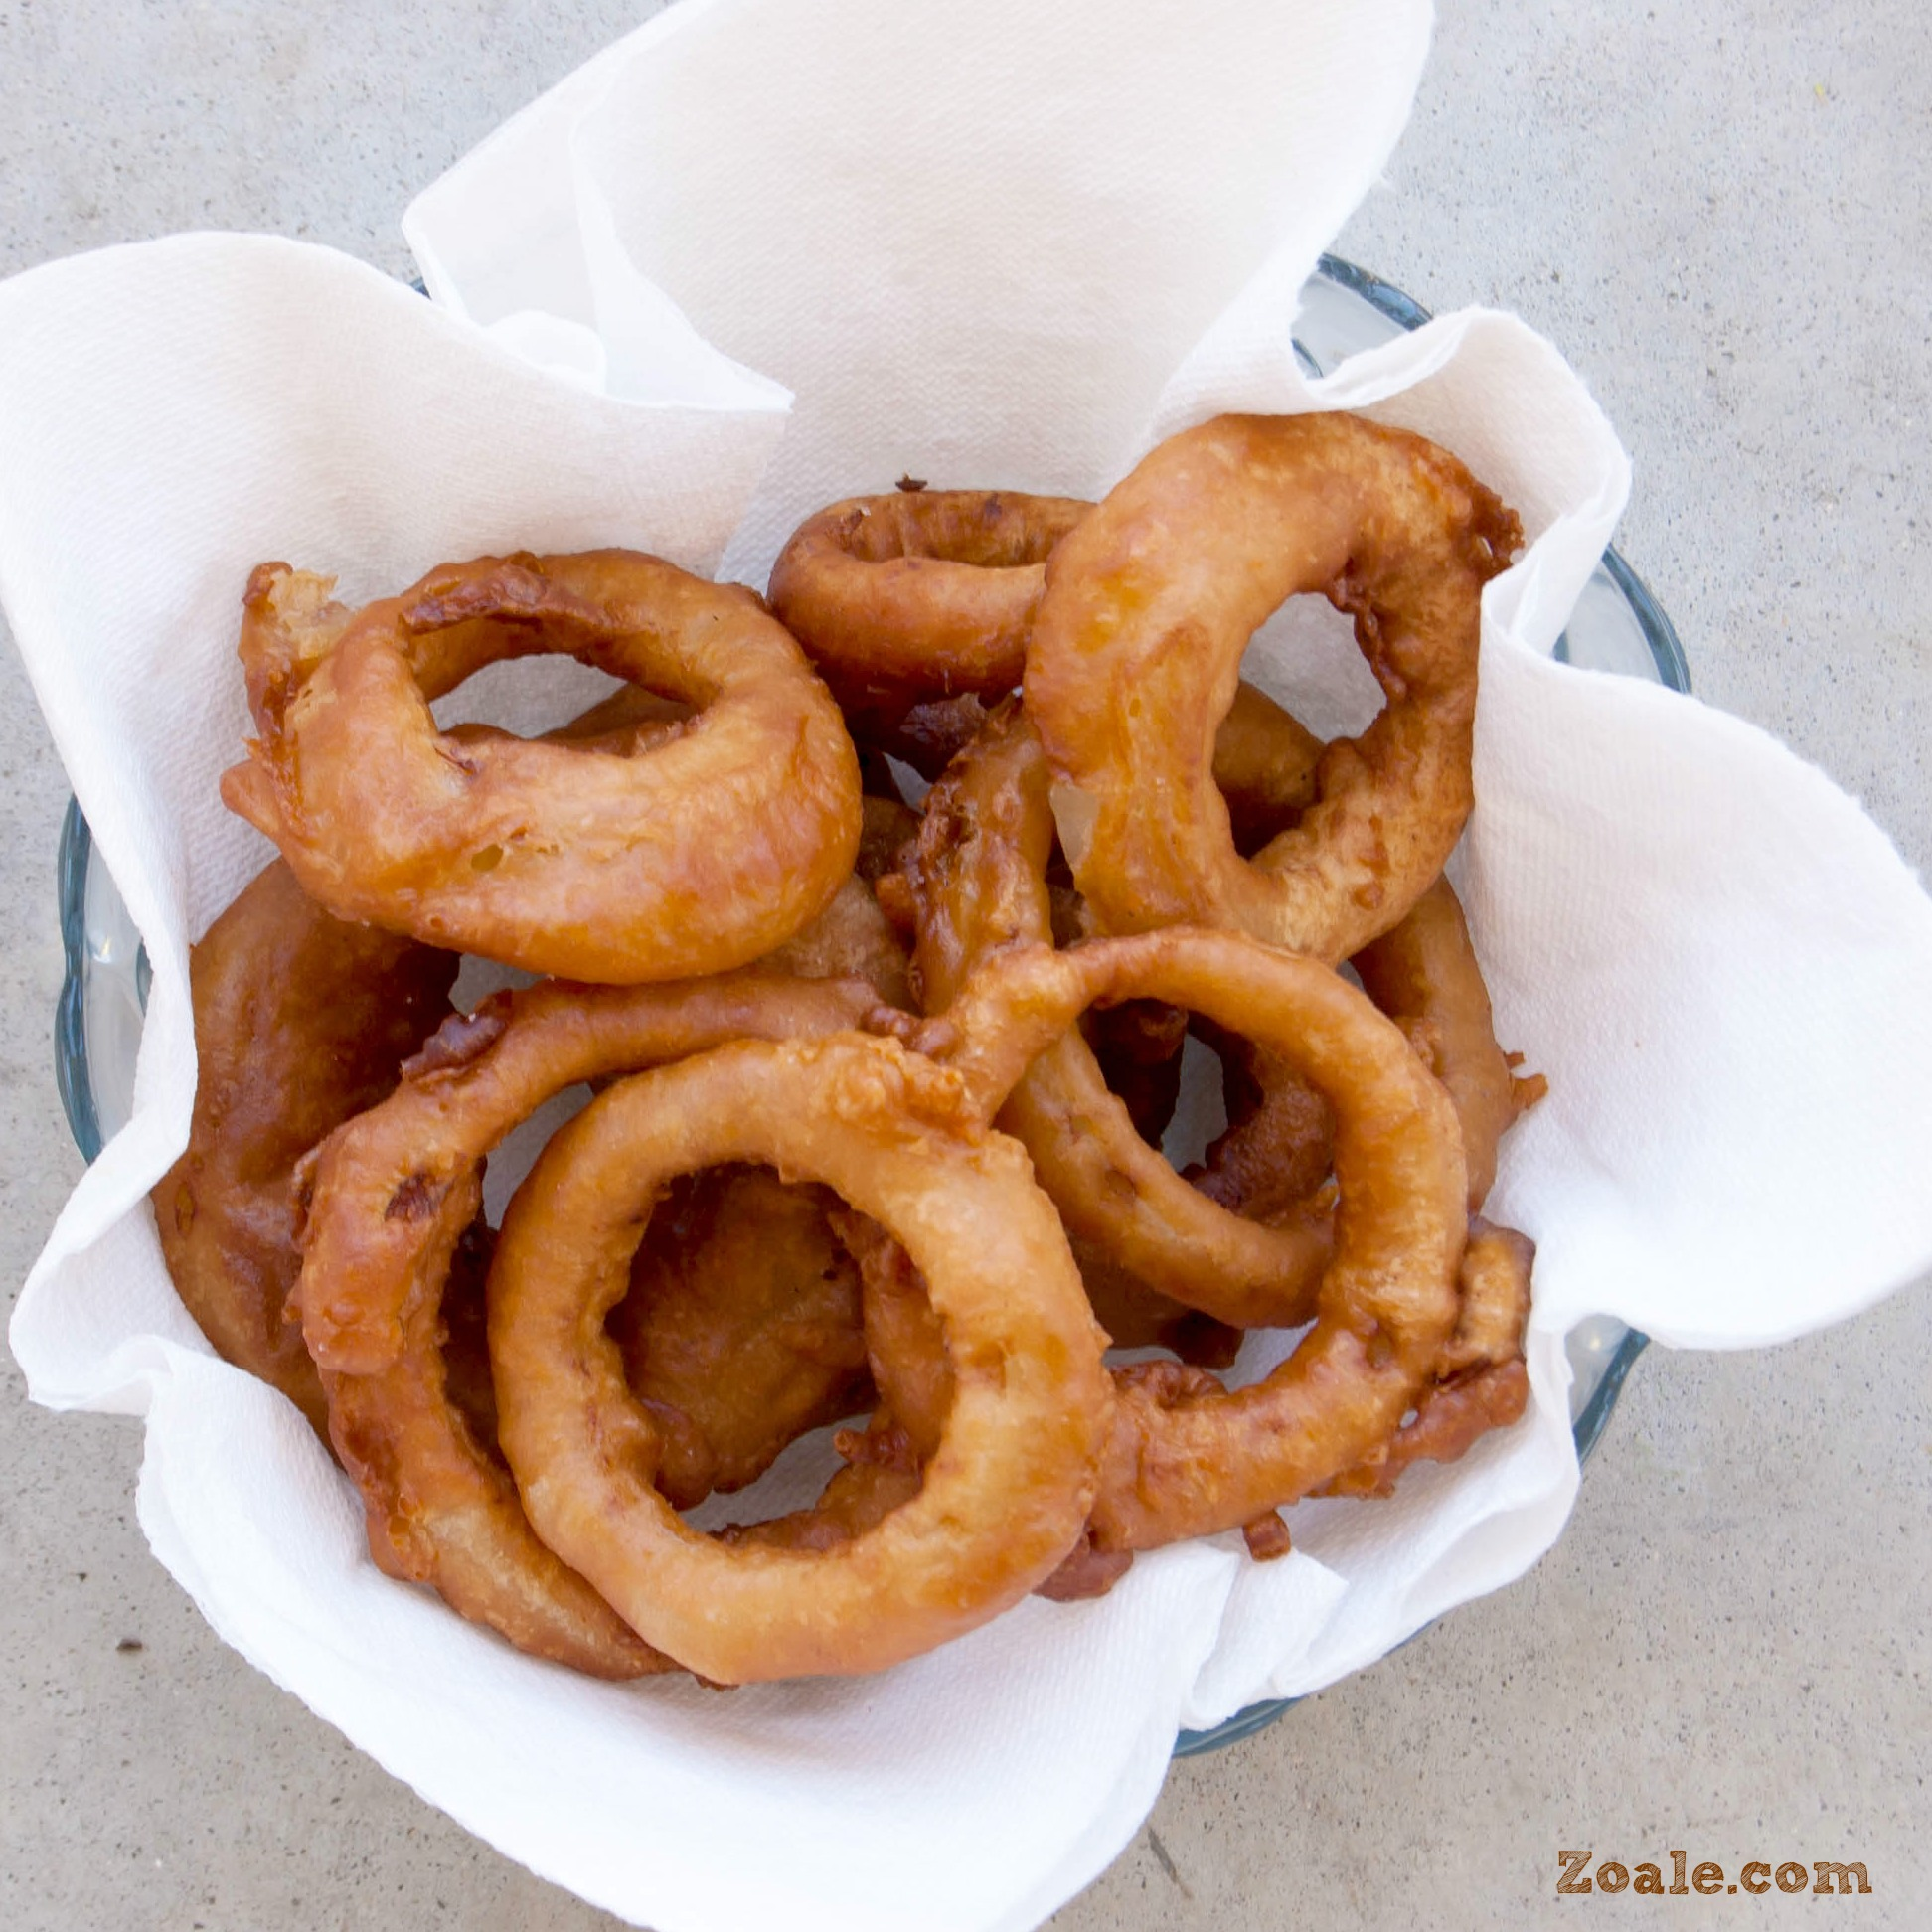 Black and Tan Beer Battered Onion Rings